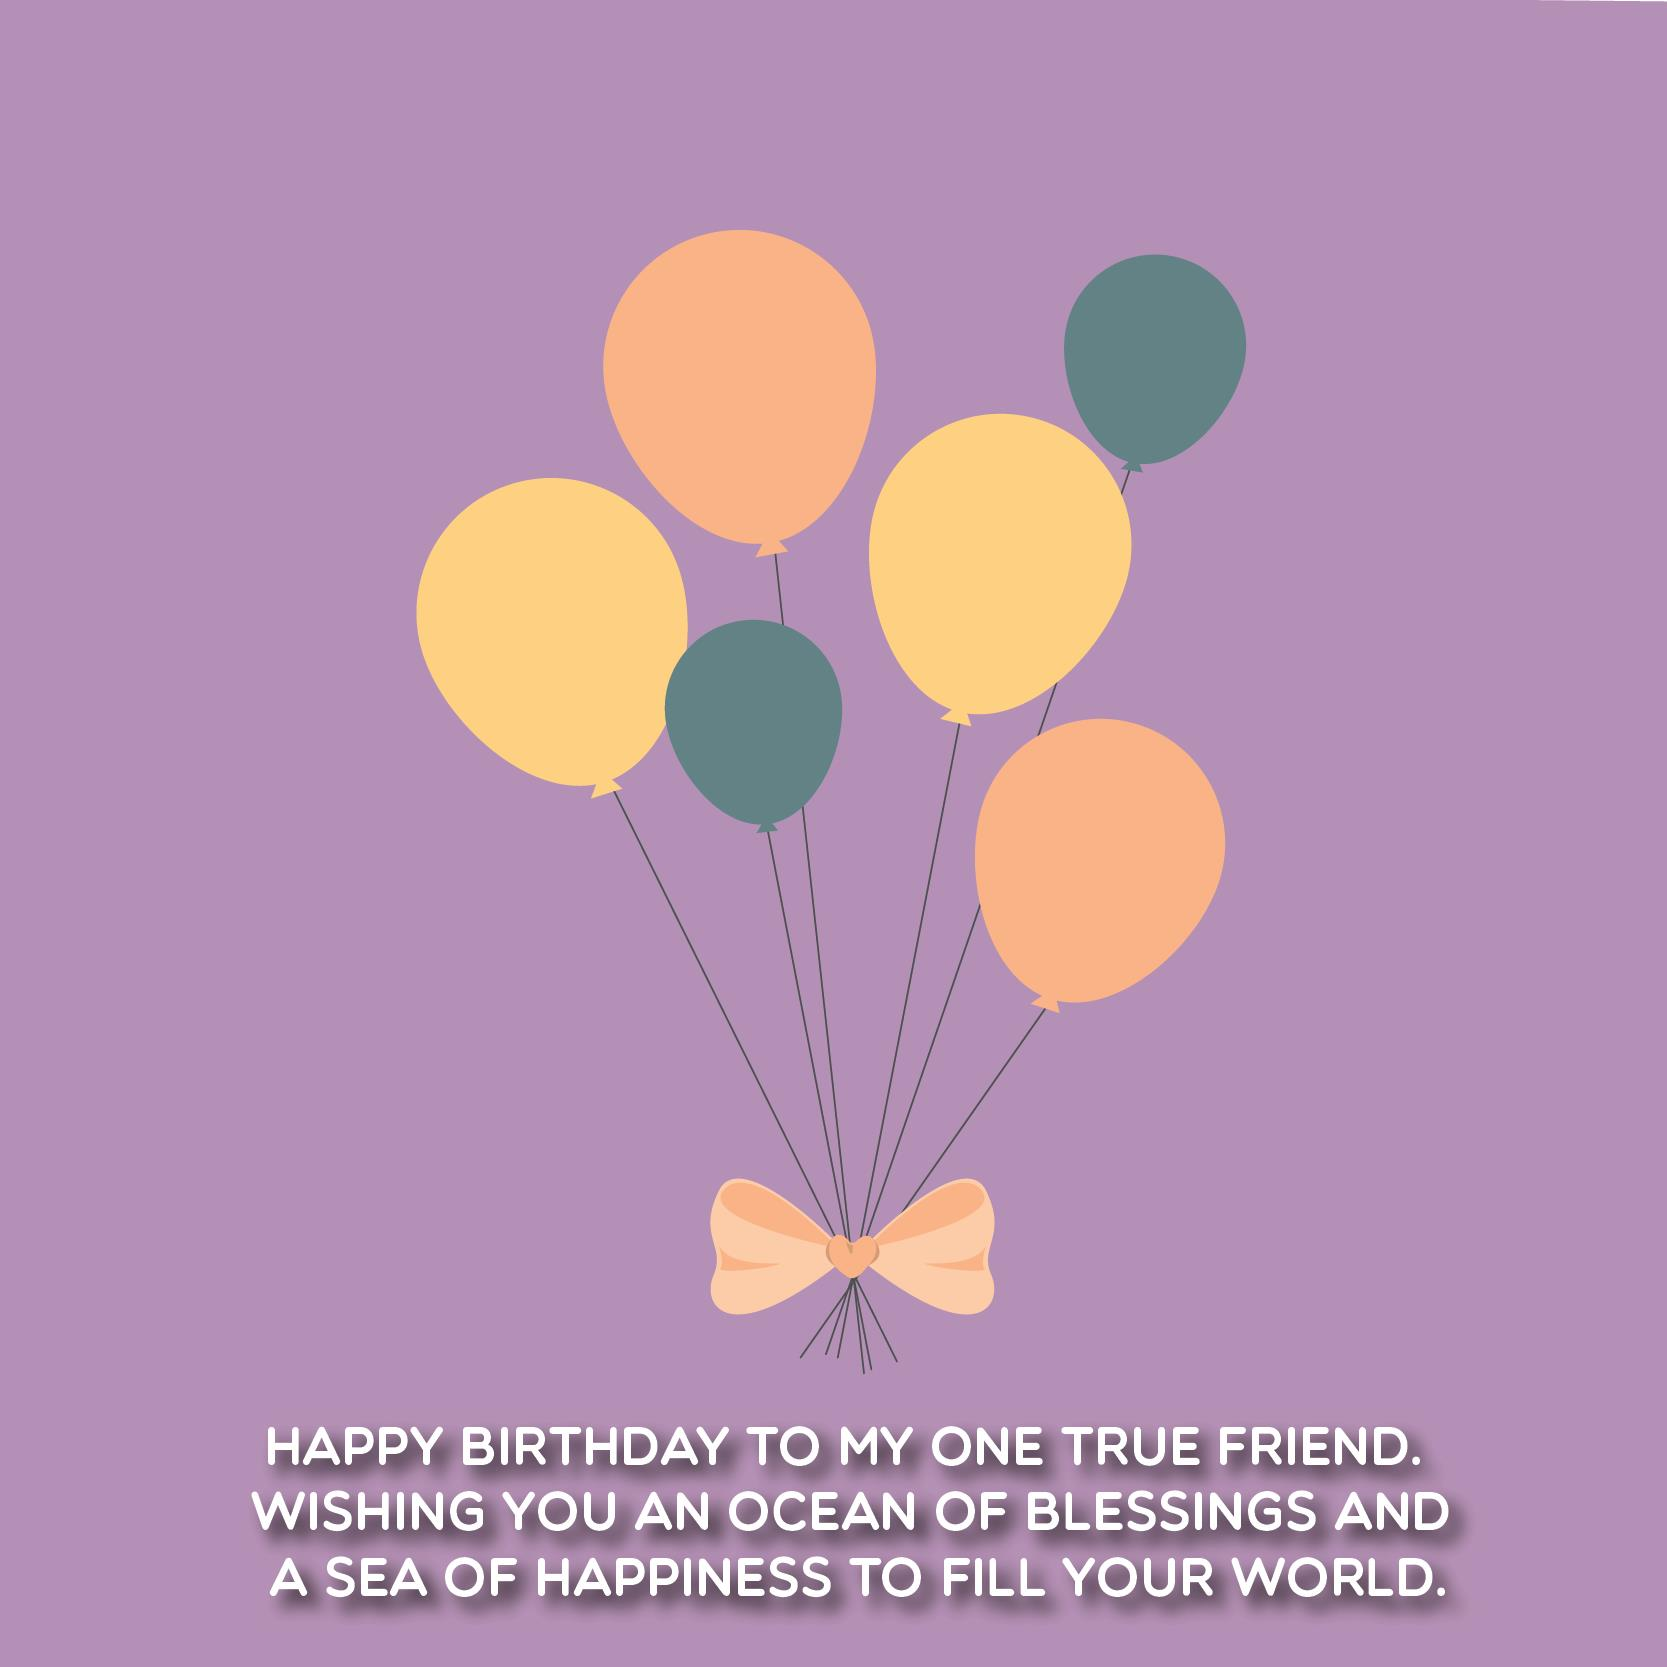 birthday-wishes-for-a-good-friend-04